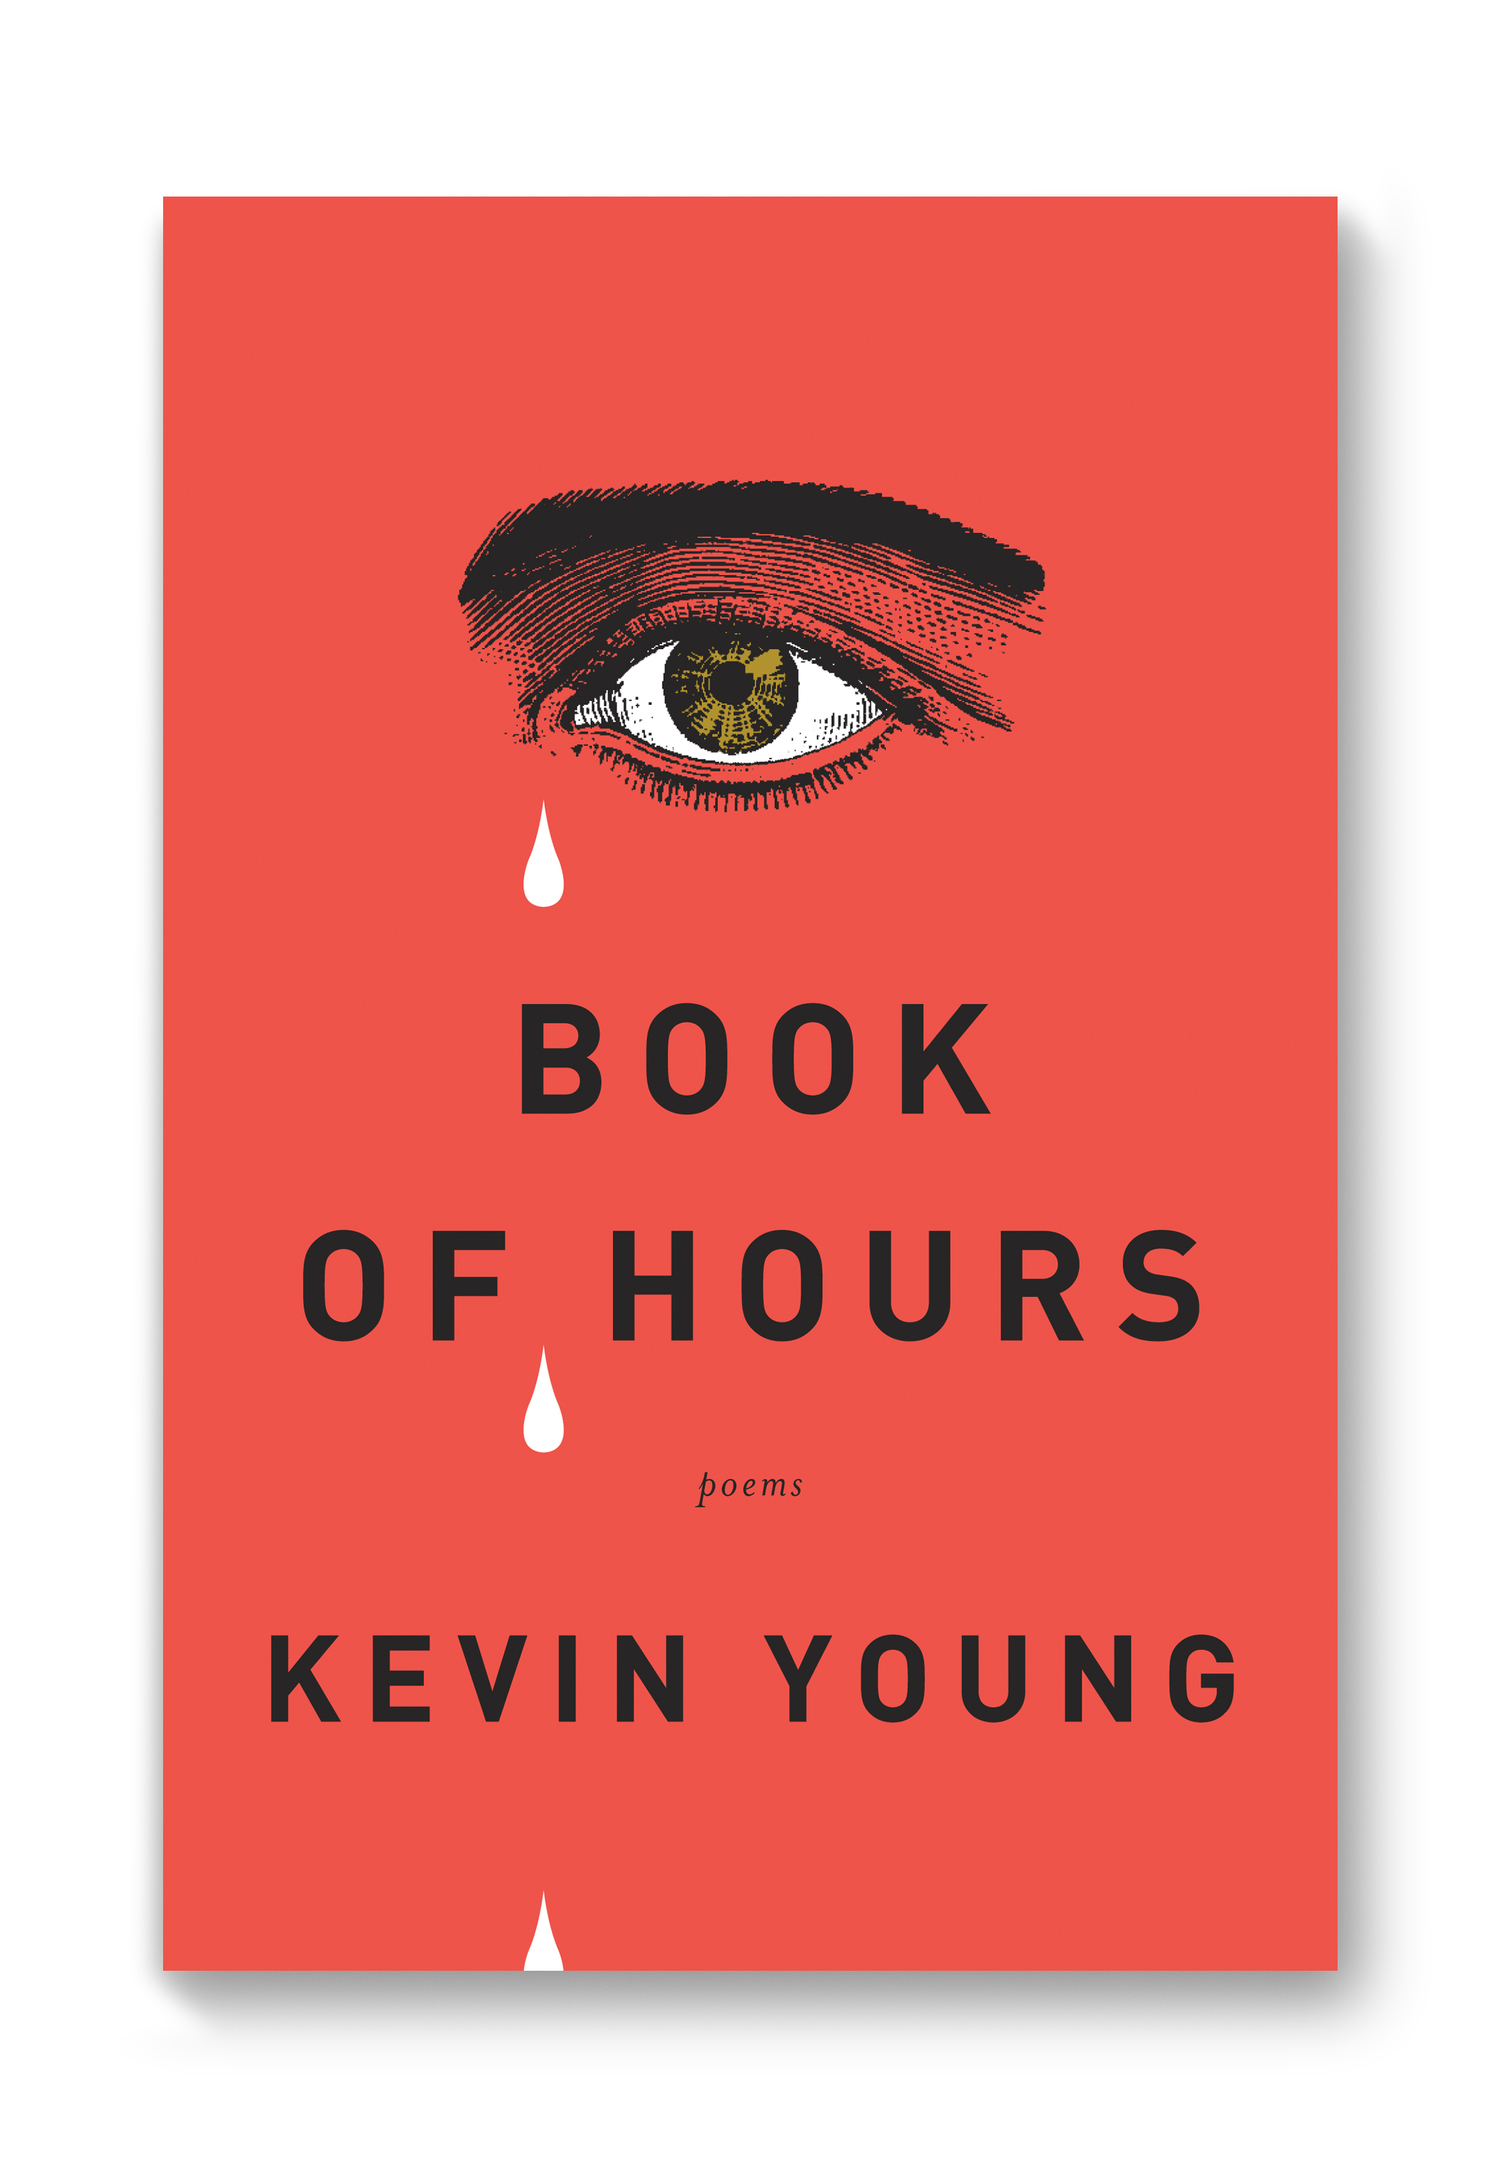 How To Make Minimalist Book Cover : Book of hours kevin young — kelly blair